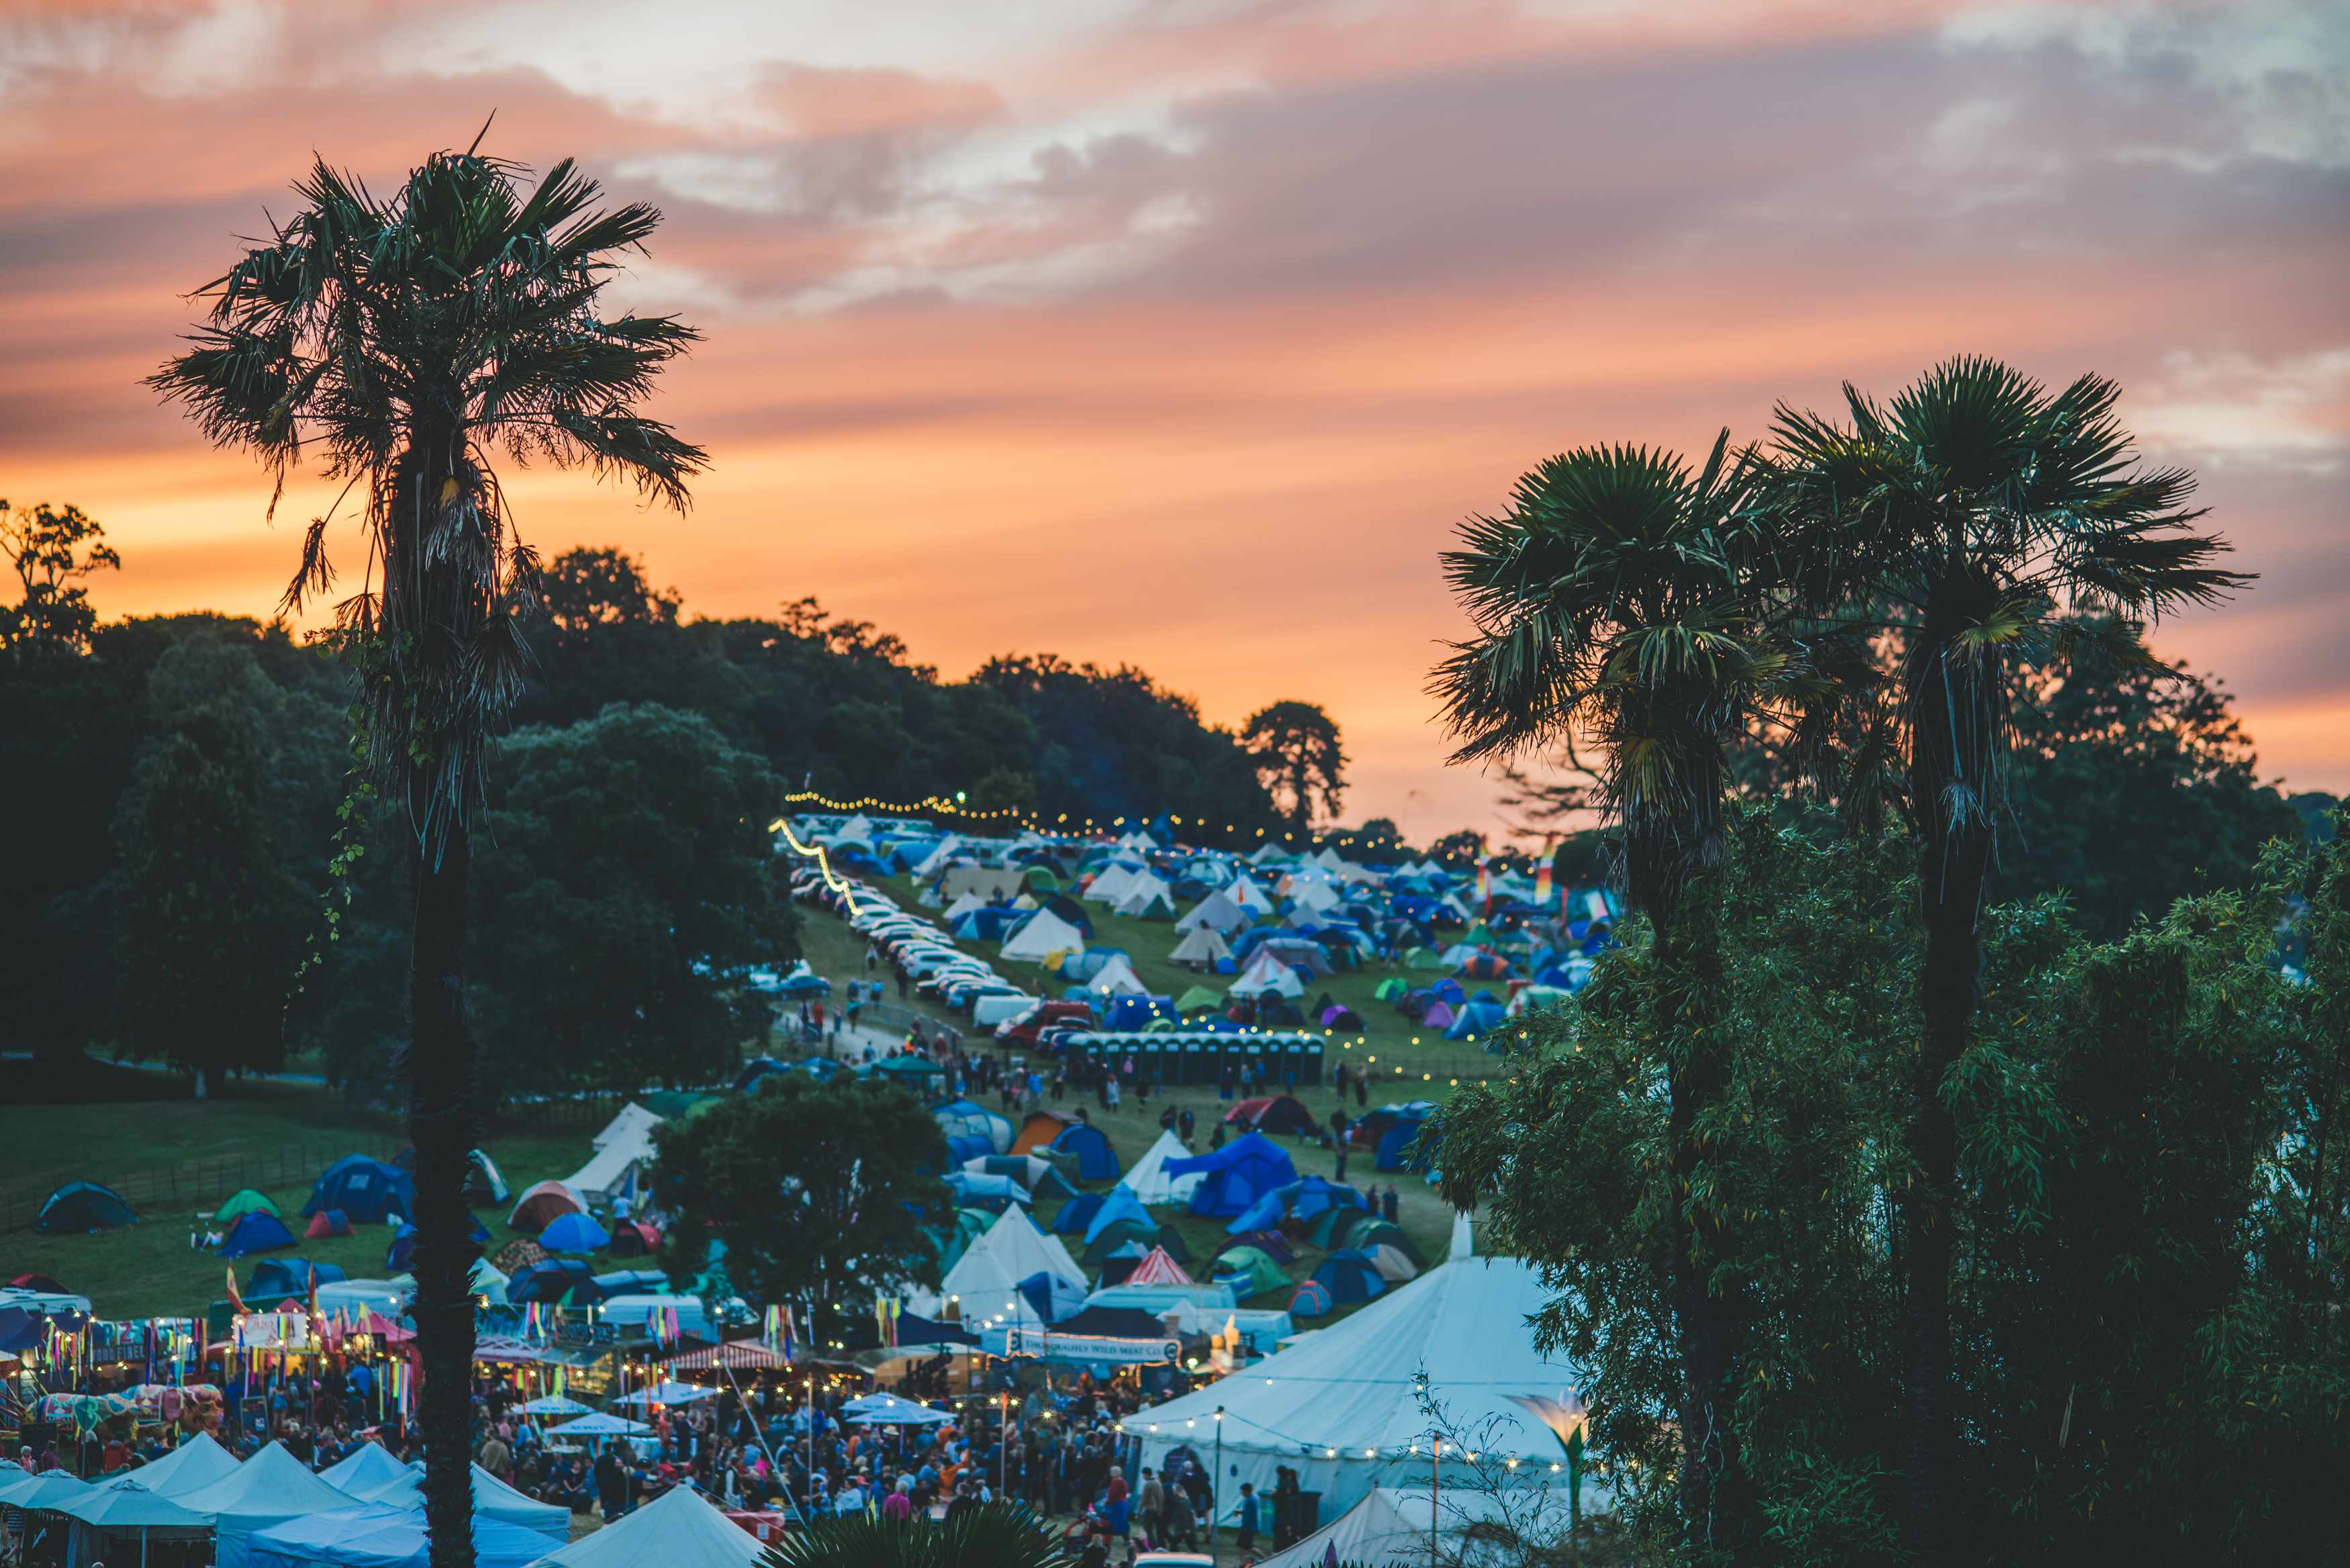 An orange sunset over Port Eliot Festival with tents in the image